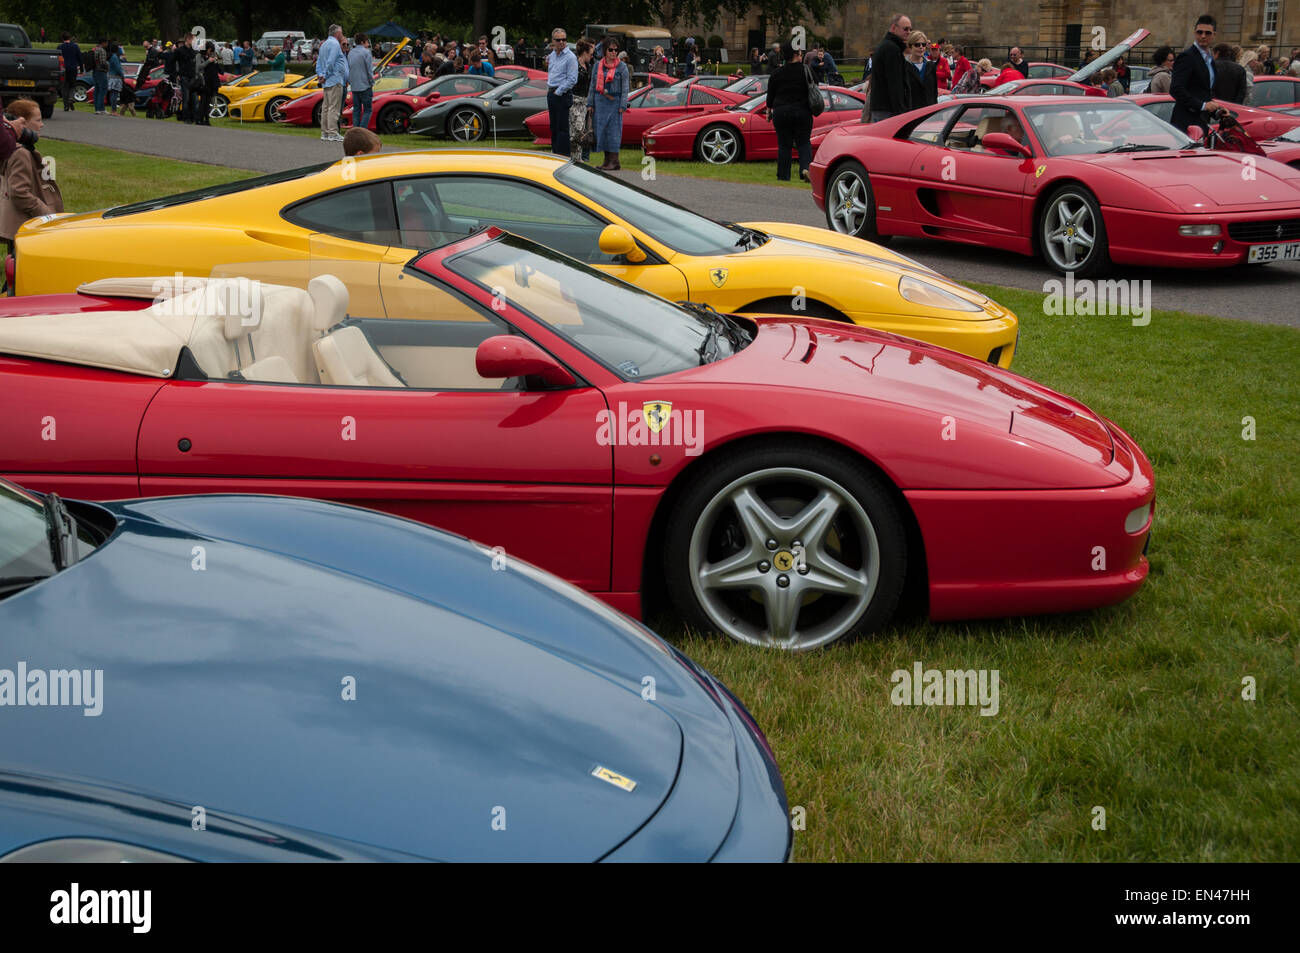 Collection Of Italian Sports Cars At The Ferrari Owners Club Rally At  Blenheim Palace, Woodstock, Oxfordshire